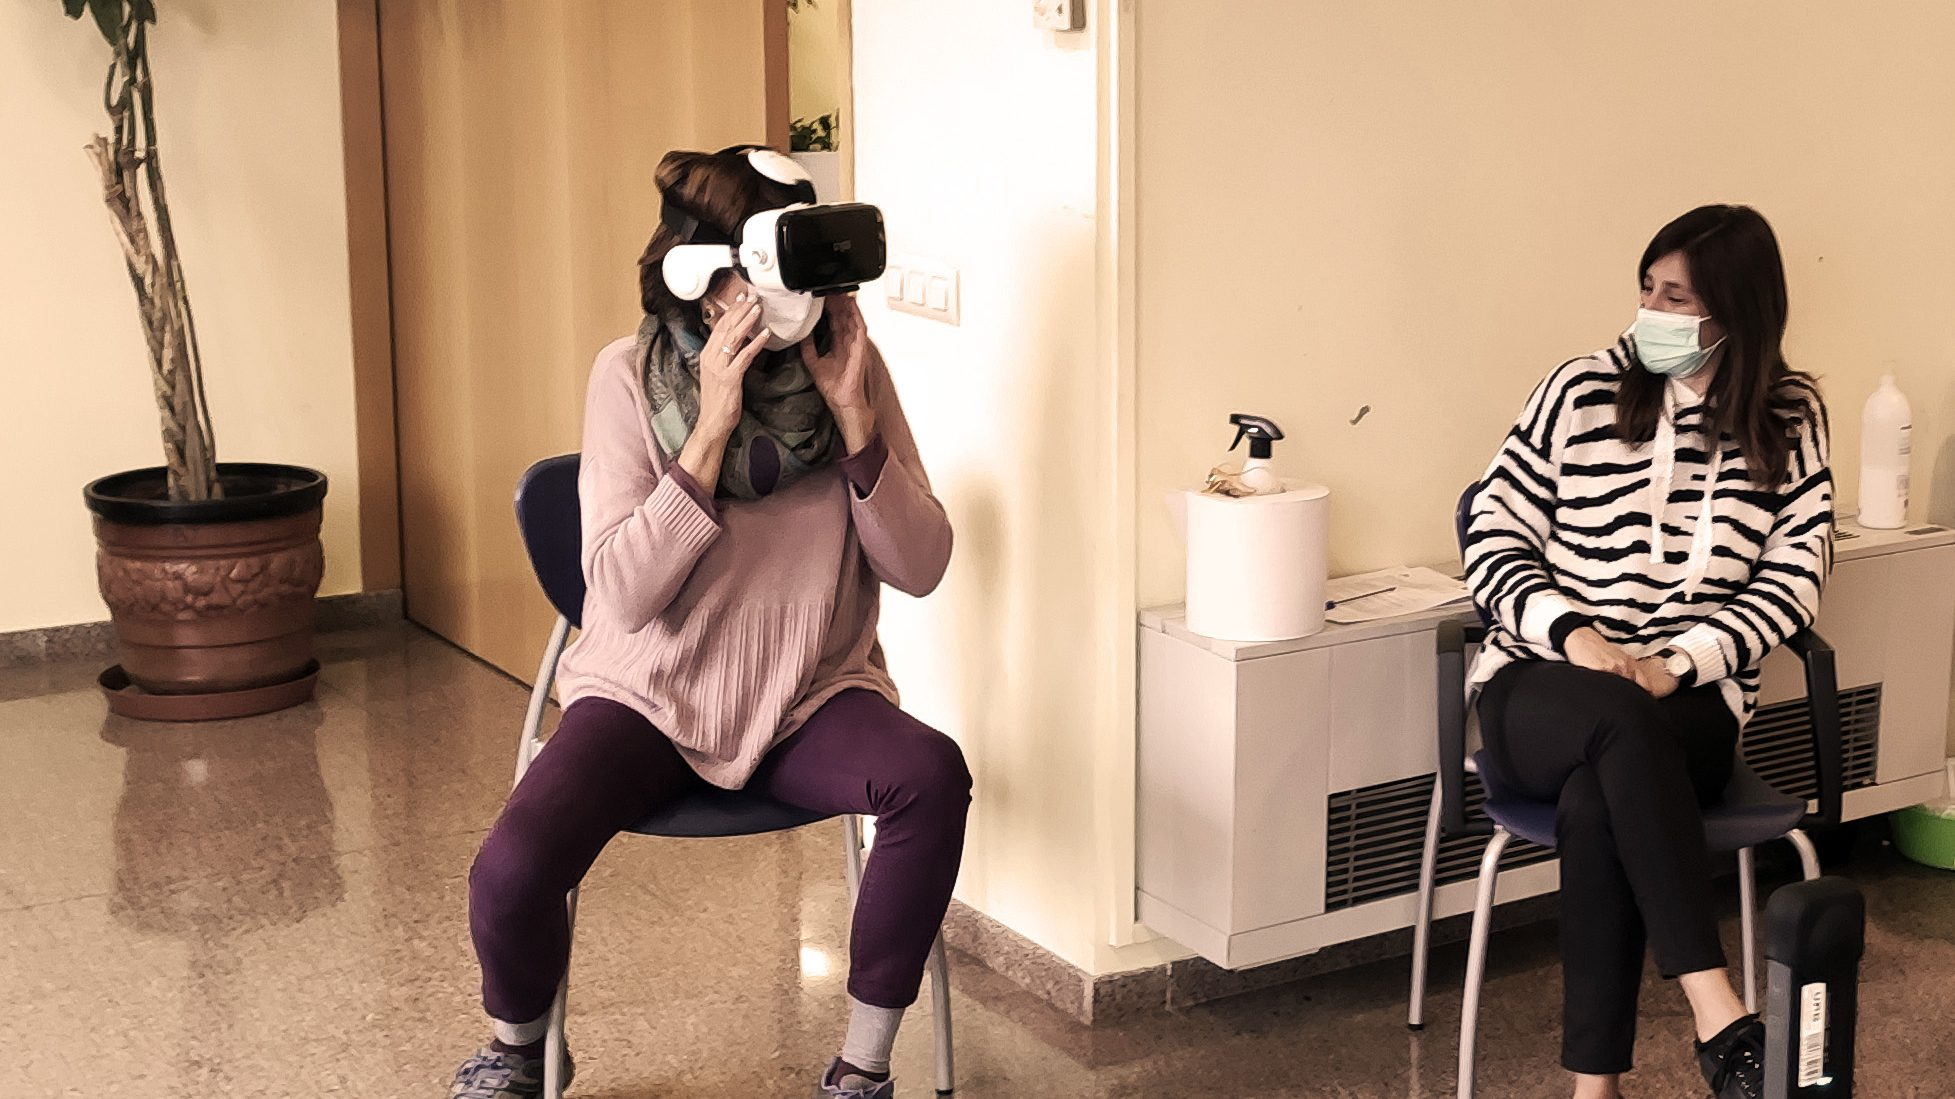 Image shows two female participants that test a Virtual Reality head-mounted display for the first time in their life. One participant observes the other, how she handles the VR experience.